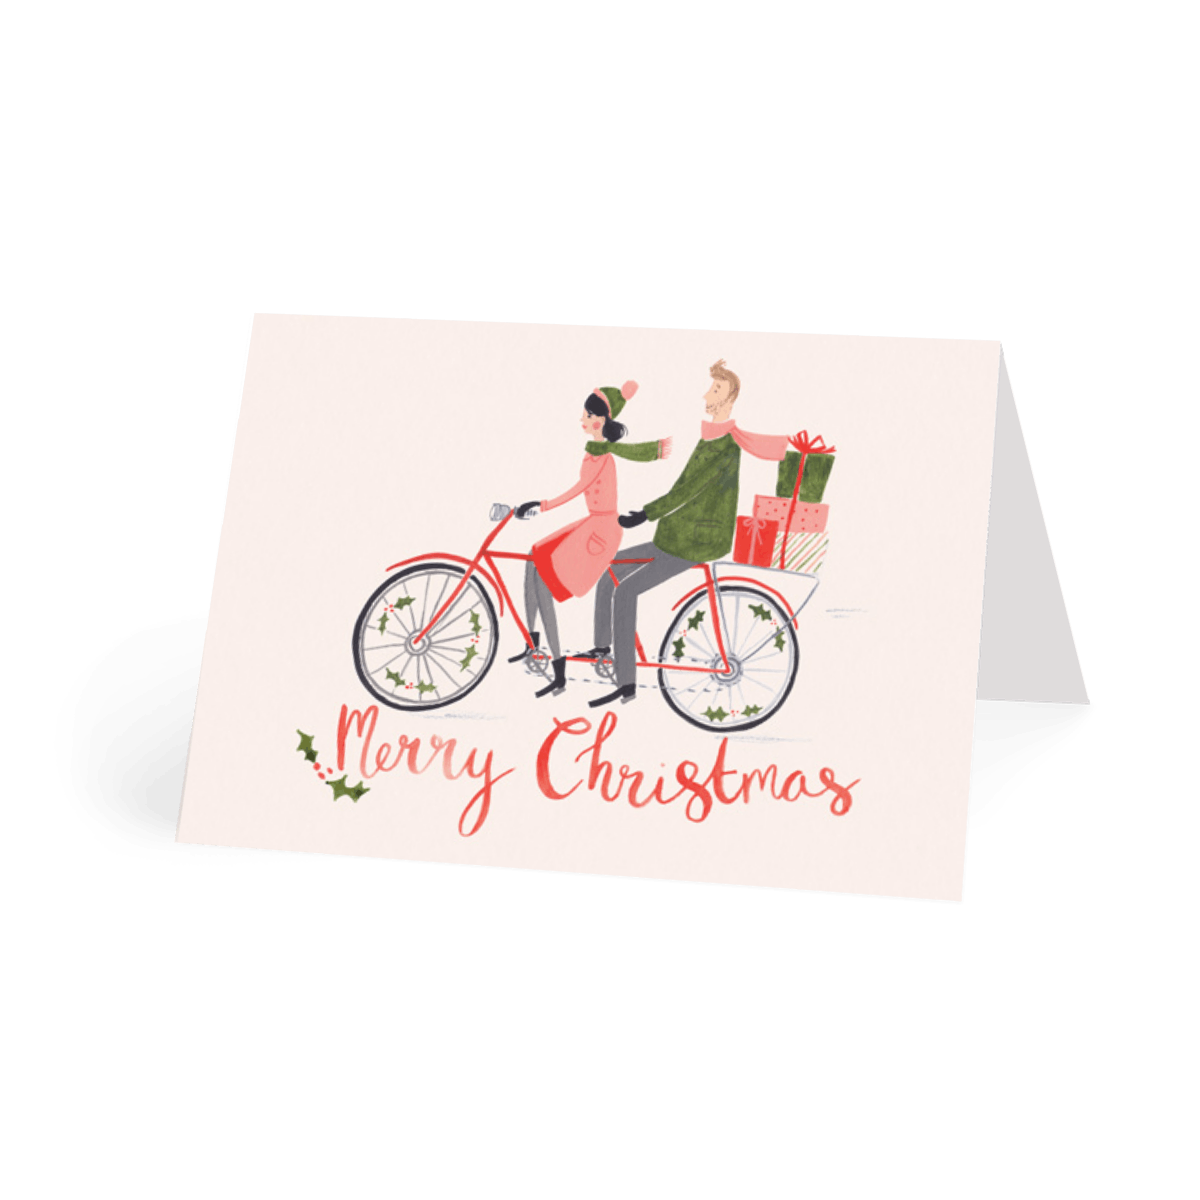 Https%3a%2f%2fwww.papier.com%2fproduct image%2f11731%2f14%2fchristmas tandem 2967 front 1537273710.png?ixlib=rb 1.1